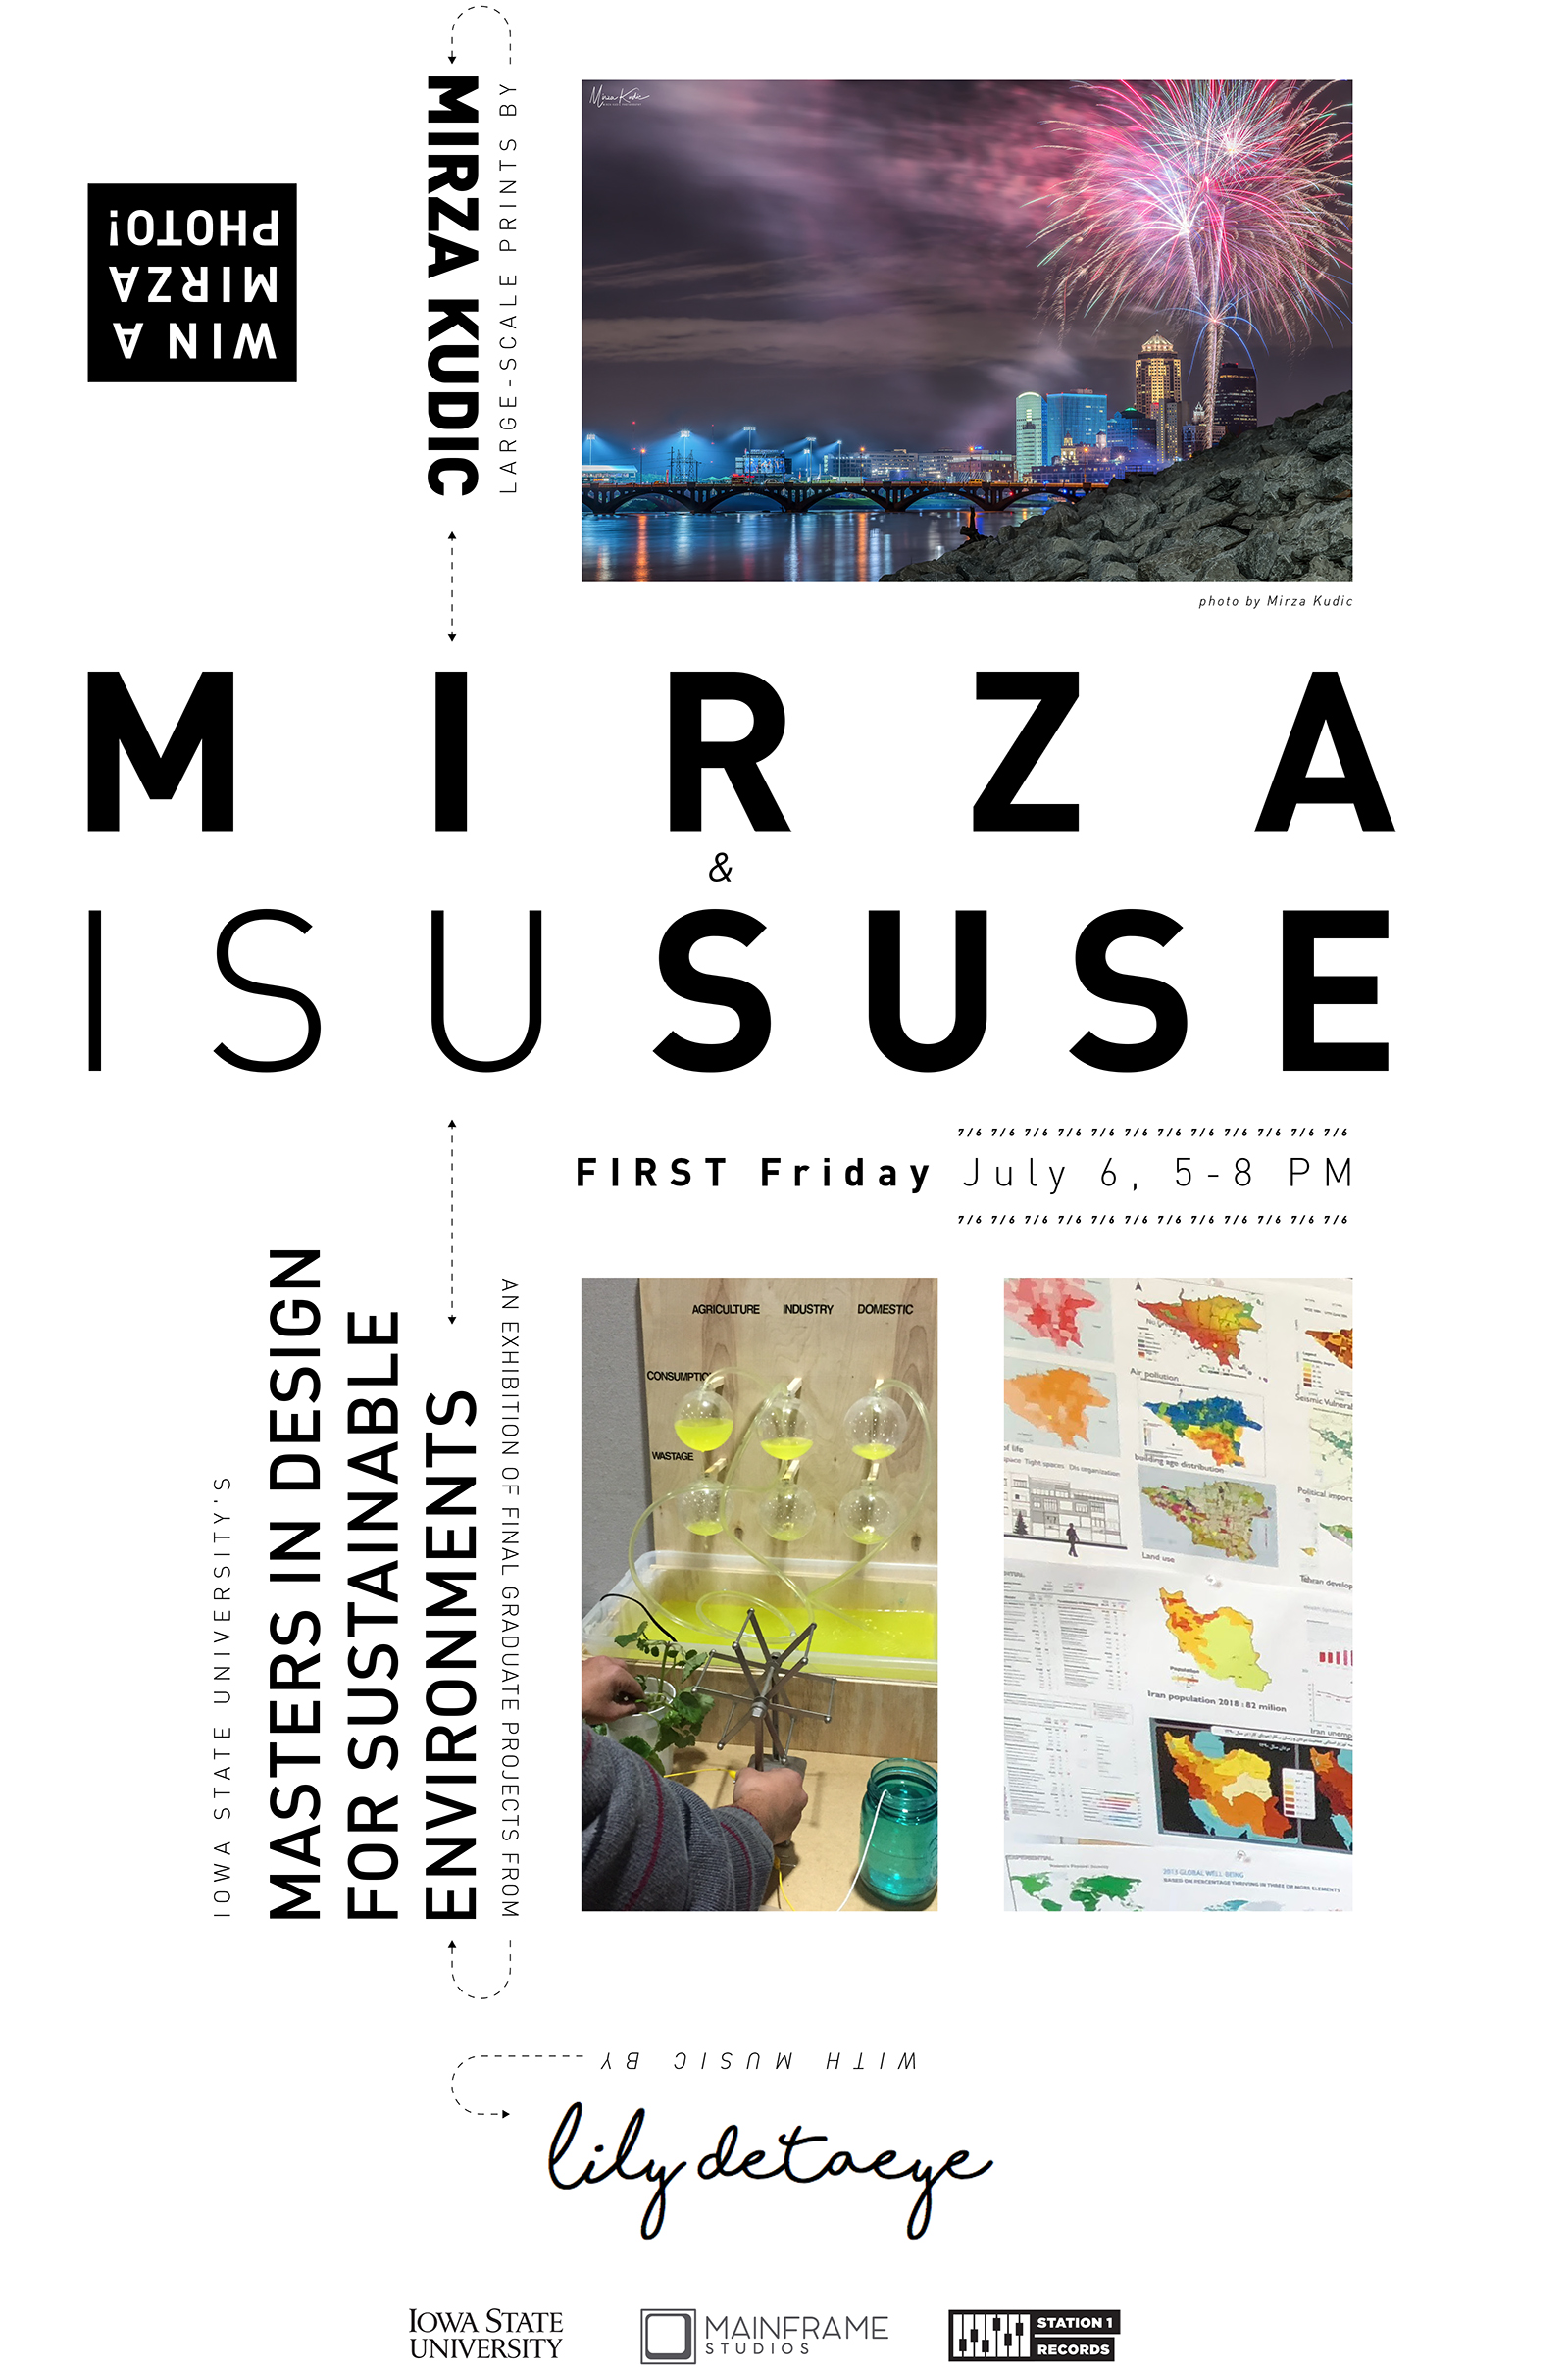 Mainframe-SusE-FirstFriday-Poster_04-11x17